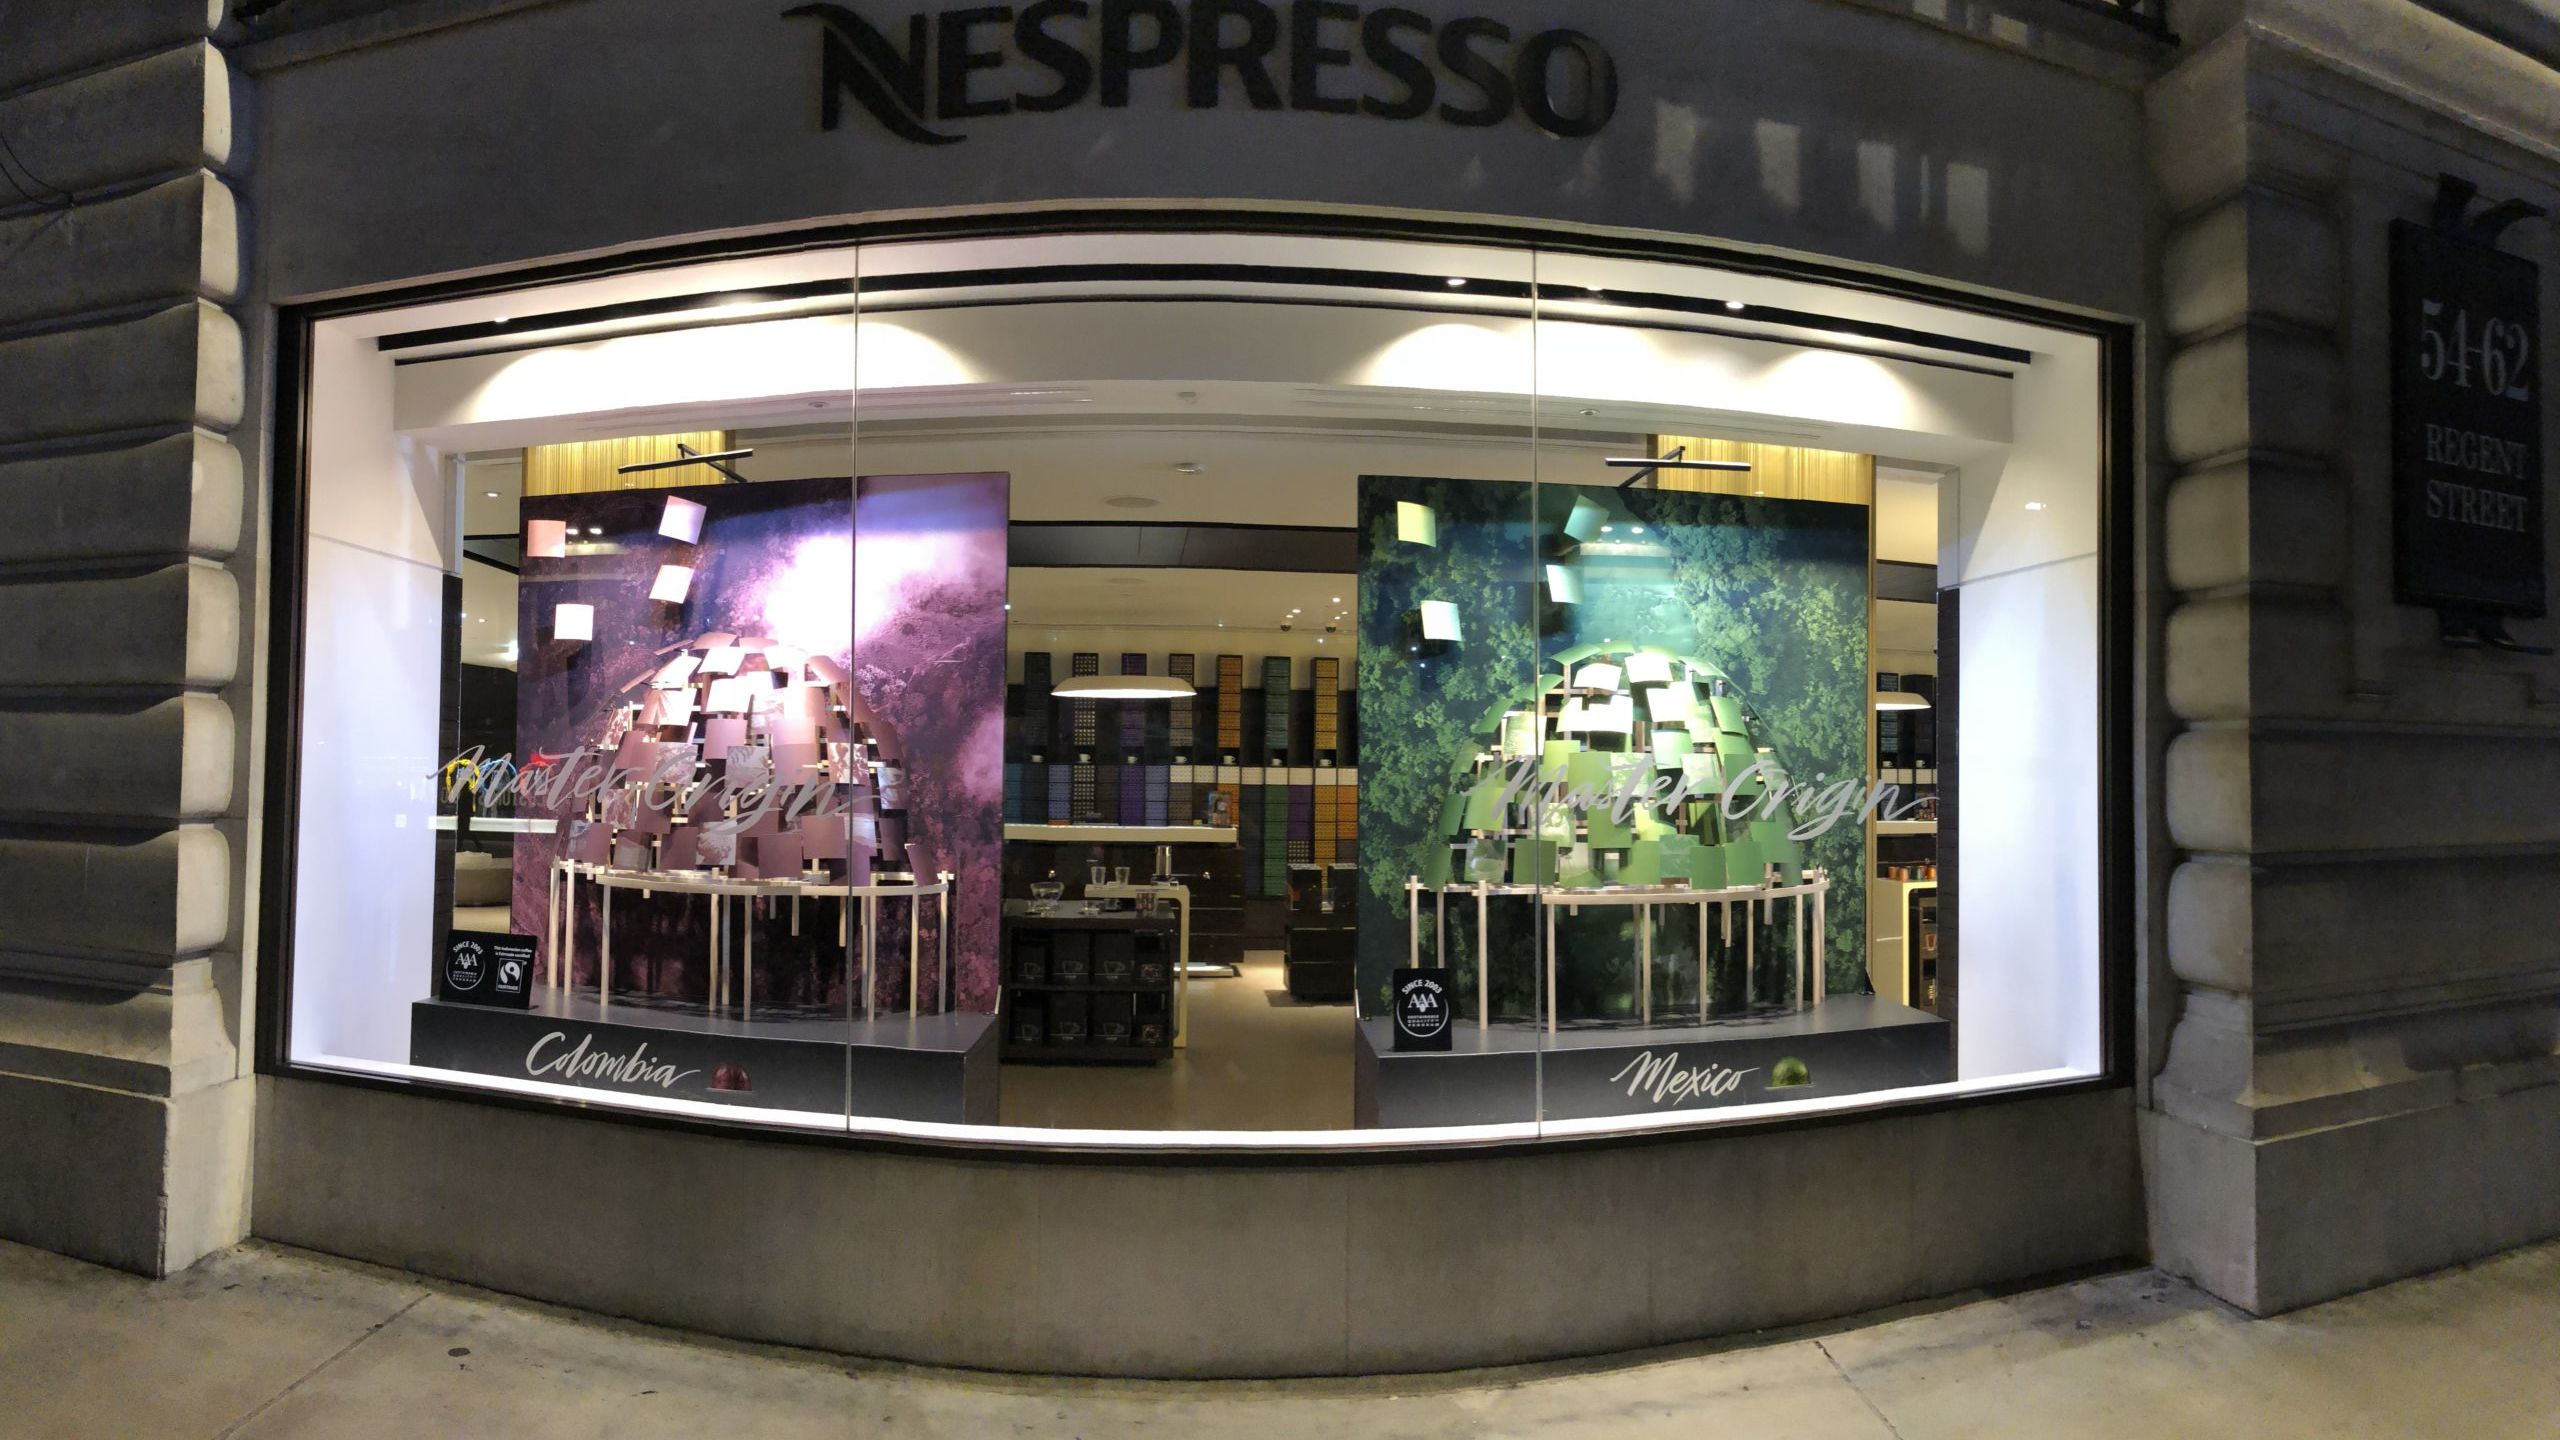 Nespresso Window Display